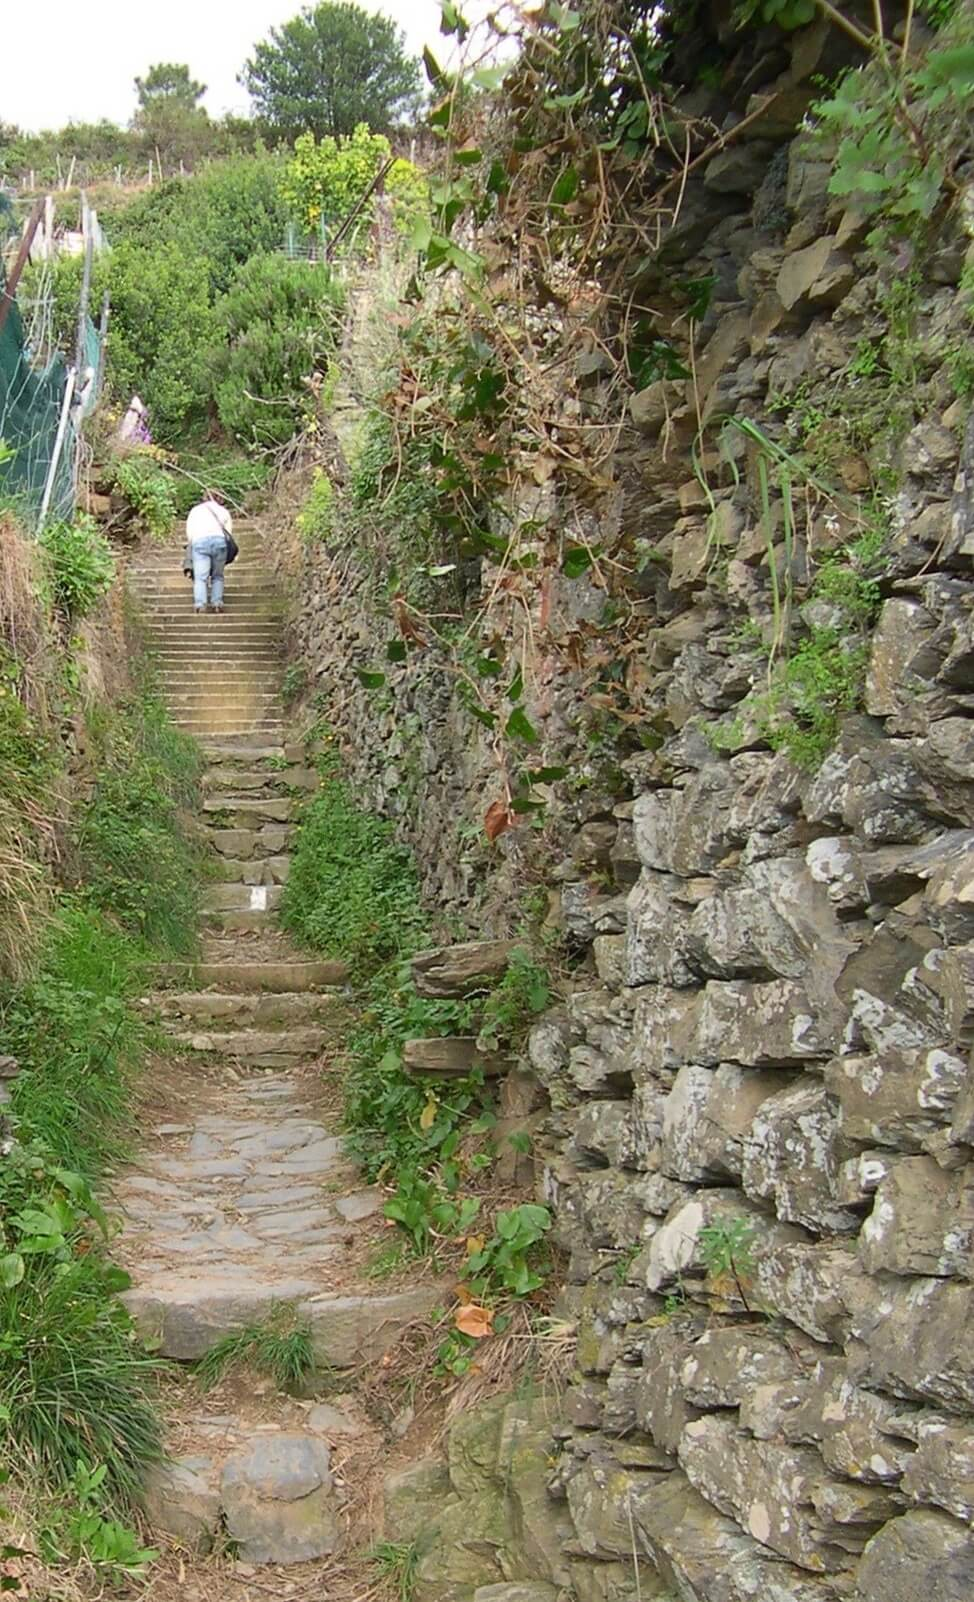 conquering steps in the Cinque Terre National Park, Italy